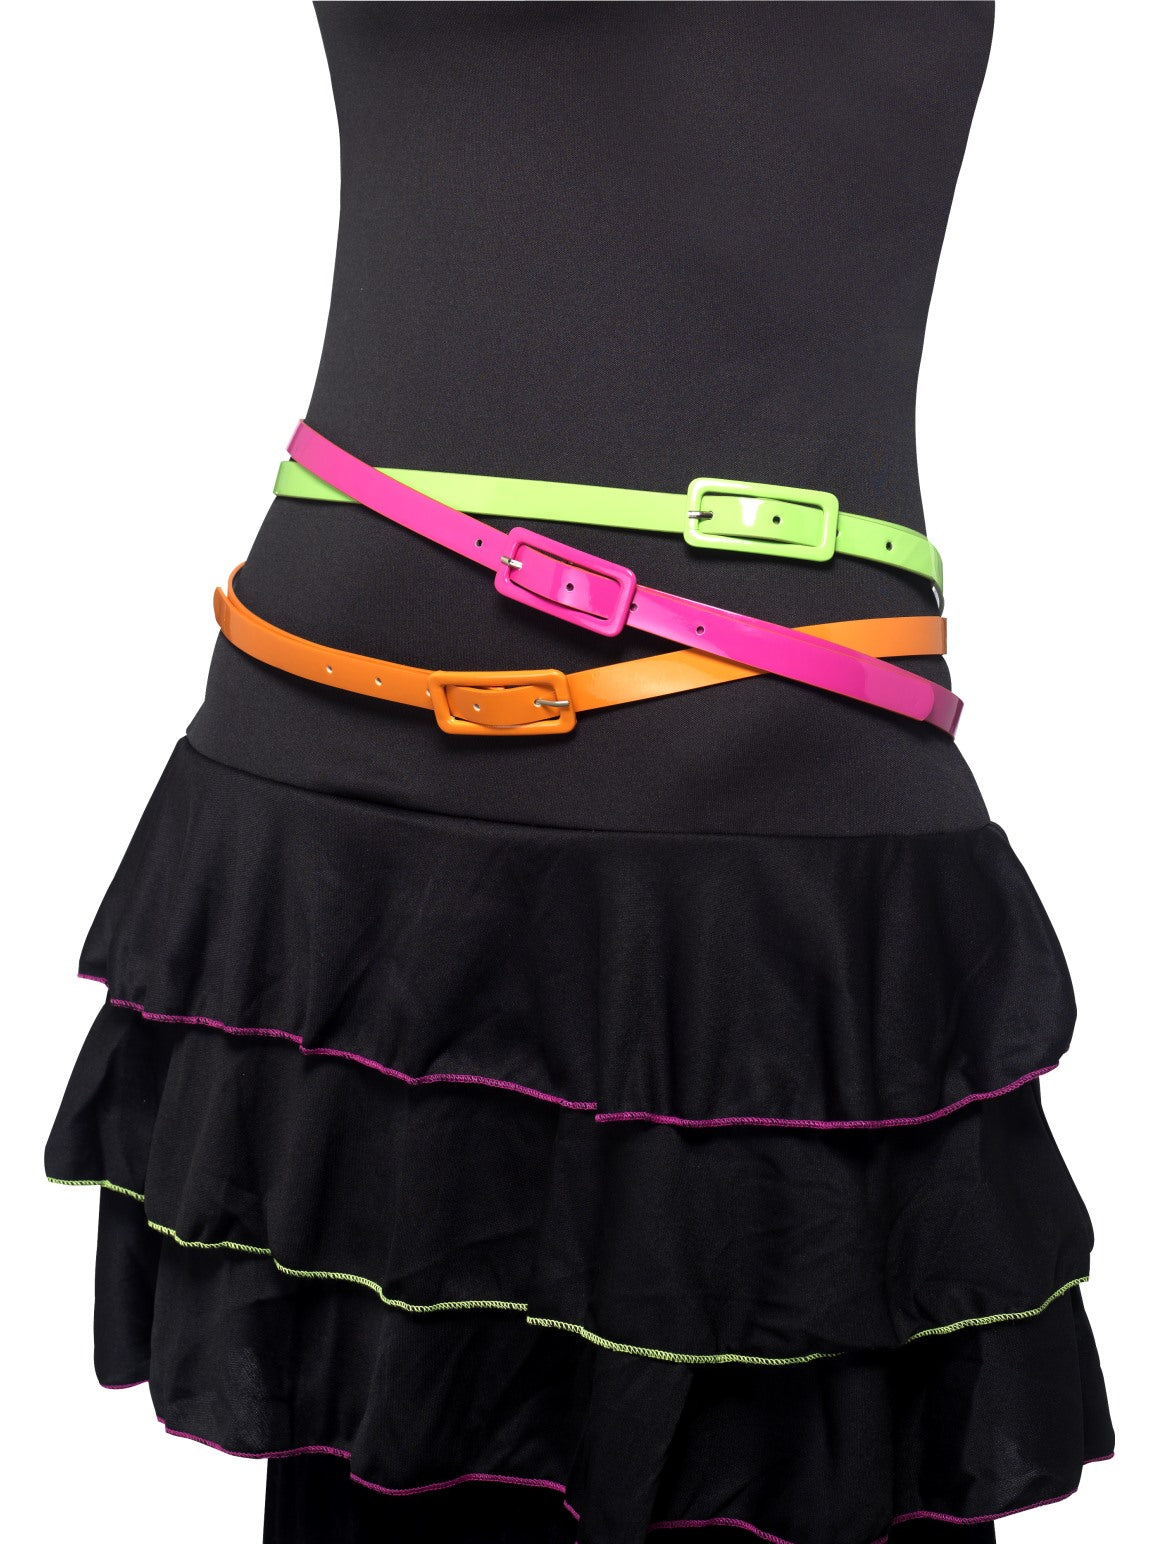 Neon Neon Belts - Party Savers